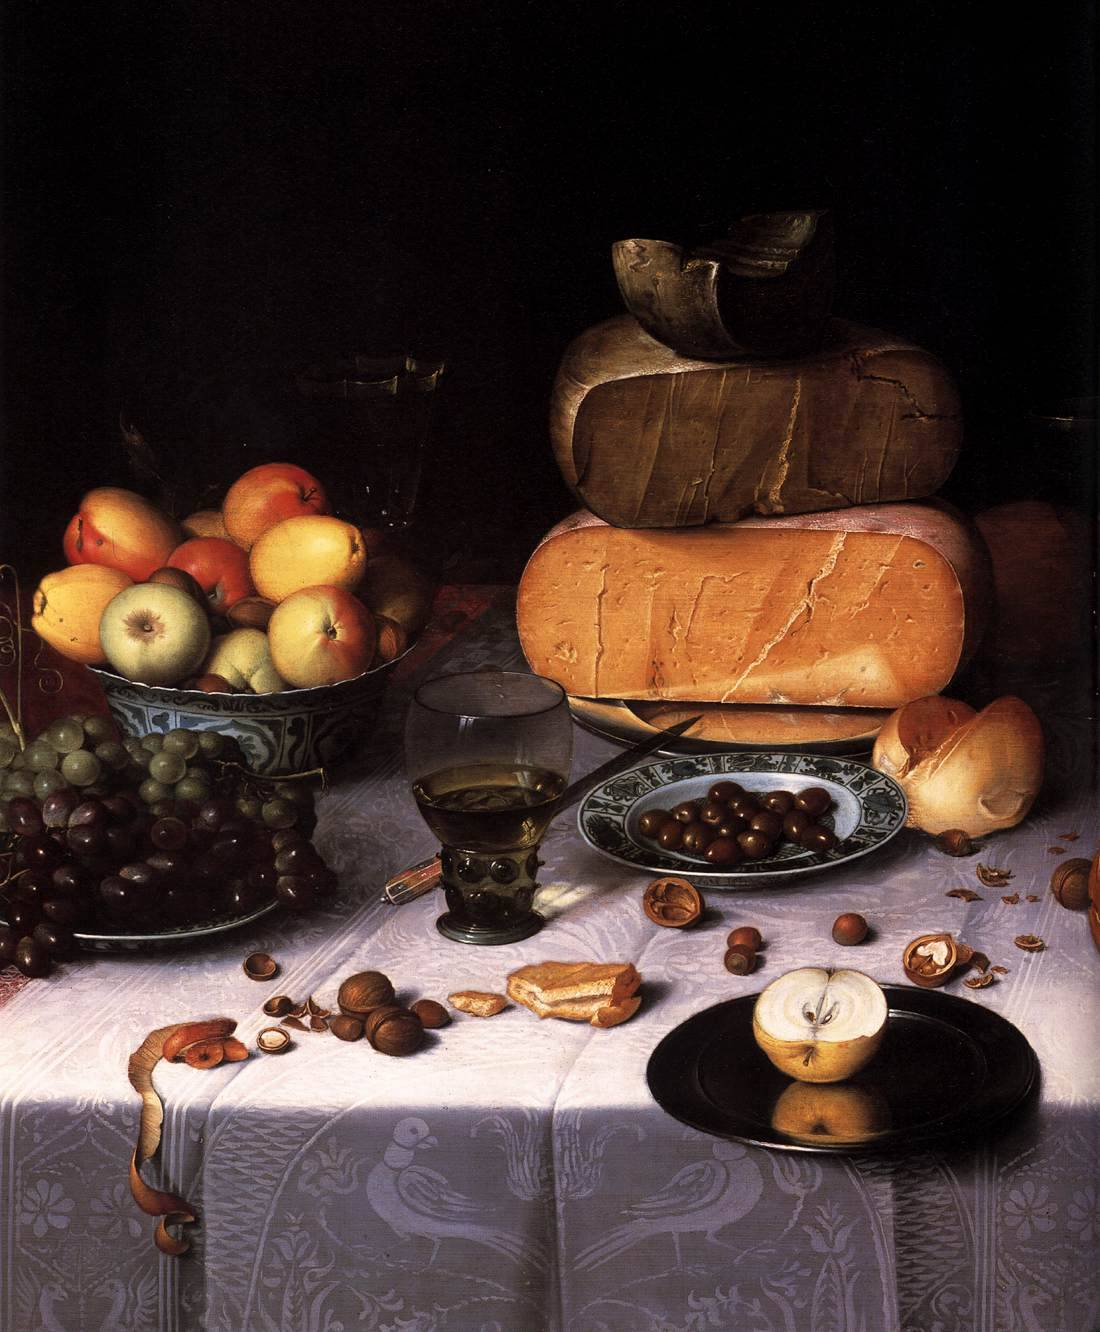 DIJCK, Floris Claesz van Dutch painter (b. 1575, Haarlem, d. 1651, Haarlem) Laid Table with Cheeses and Fruit (detail)c. 1615Oil on panelRijksmuseum, Amsterdam